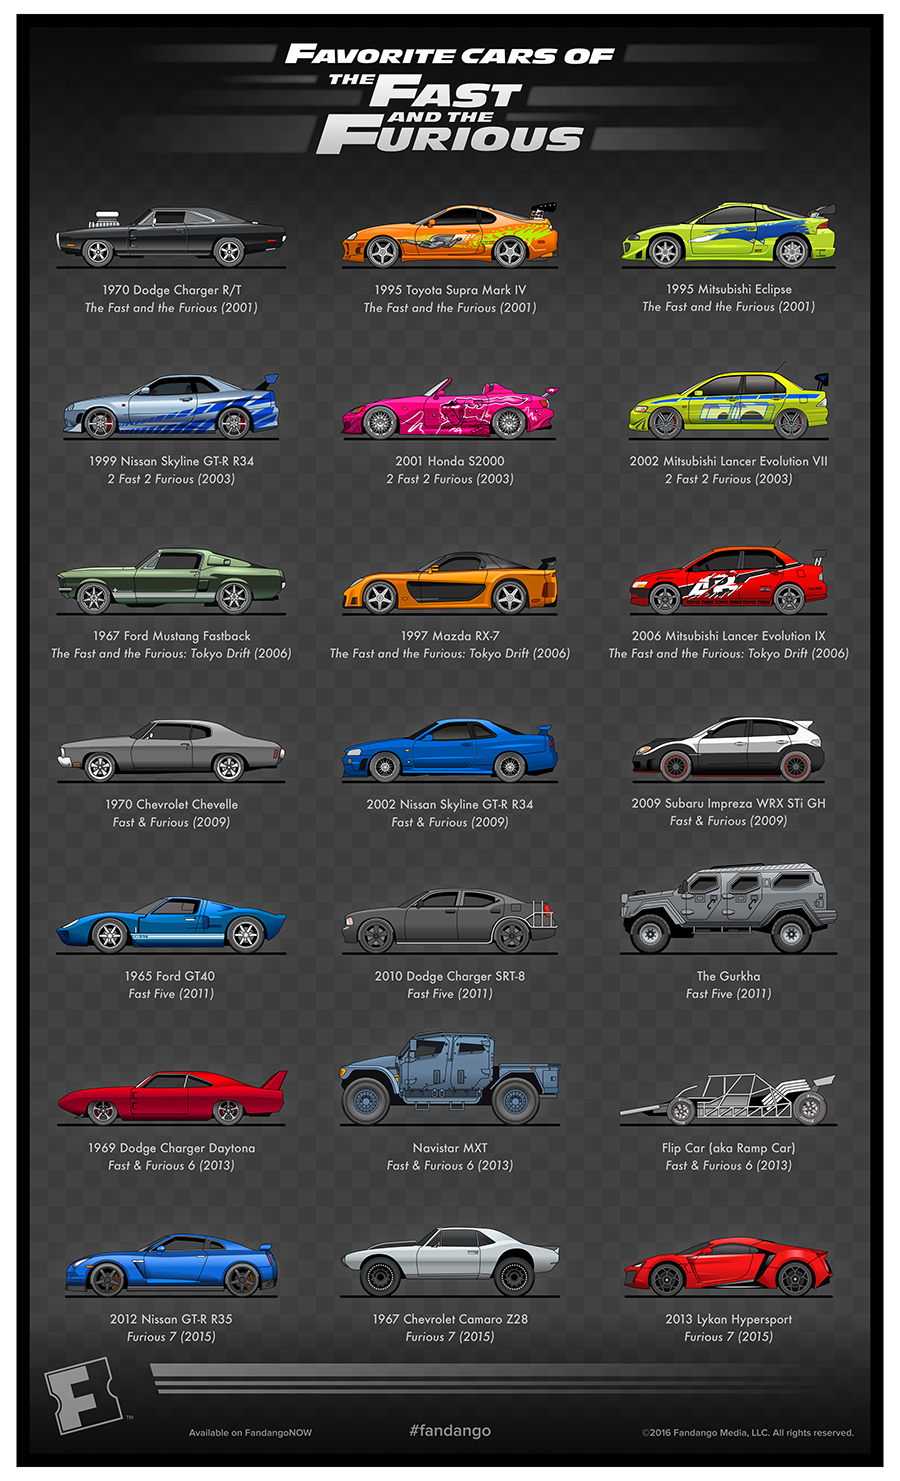 cars from fast and furious movies with Exclusive Artwork Favorite Cars Of The Fast And The Furious Franchise 750949 on Exclusive Artwork Favorite Cars Of The Fast And The Furious Franchise 750949 as well 5749 11 Craziest Fast And Furious Cars as well The Rock New Car Collection Girlfriend 2 sg g8VRnsEpEgk further Fast 8 Ice Cars besides Fast And Furious Logo.